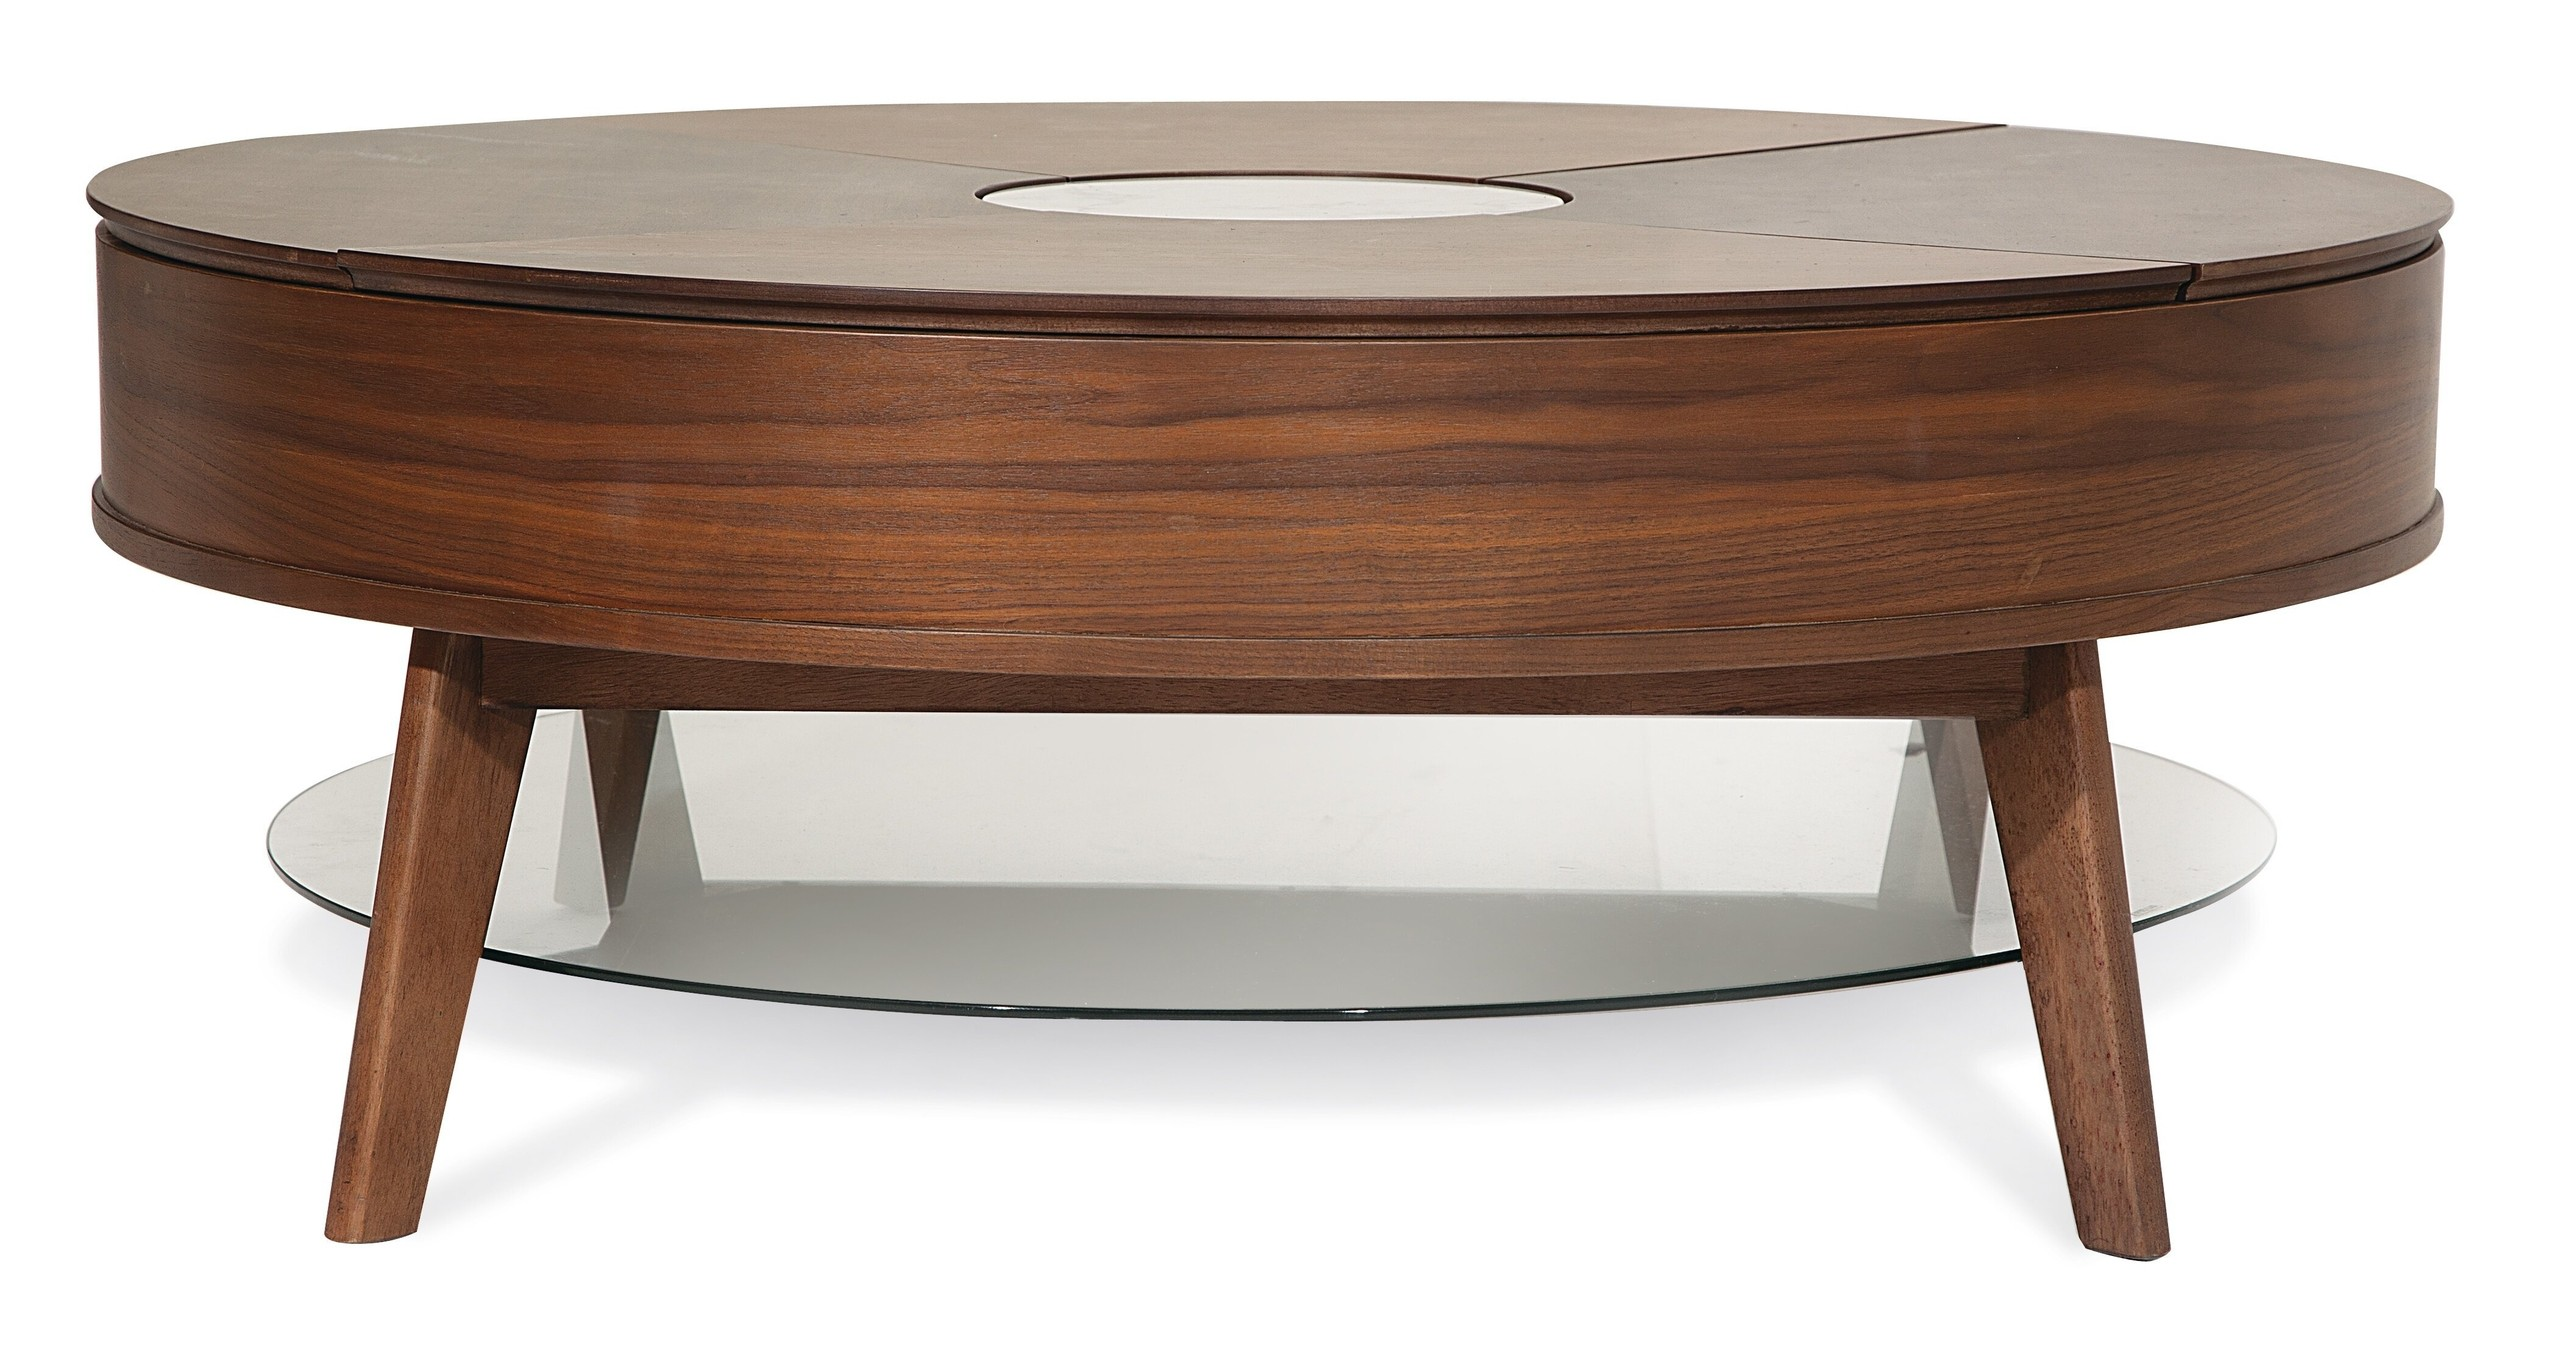 How To Choose A Lift-Top Coffee Table